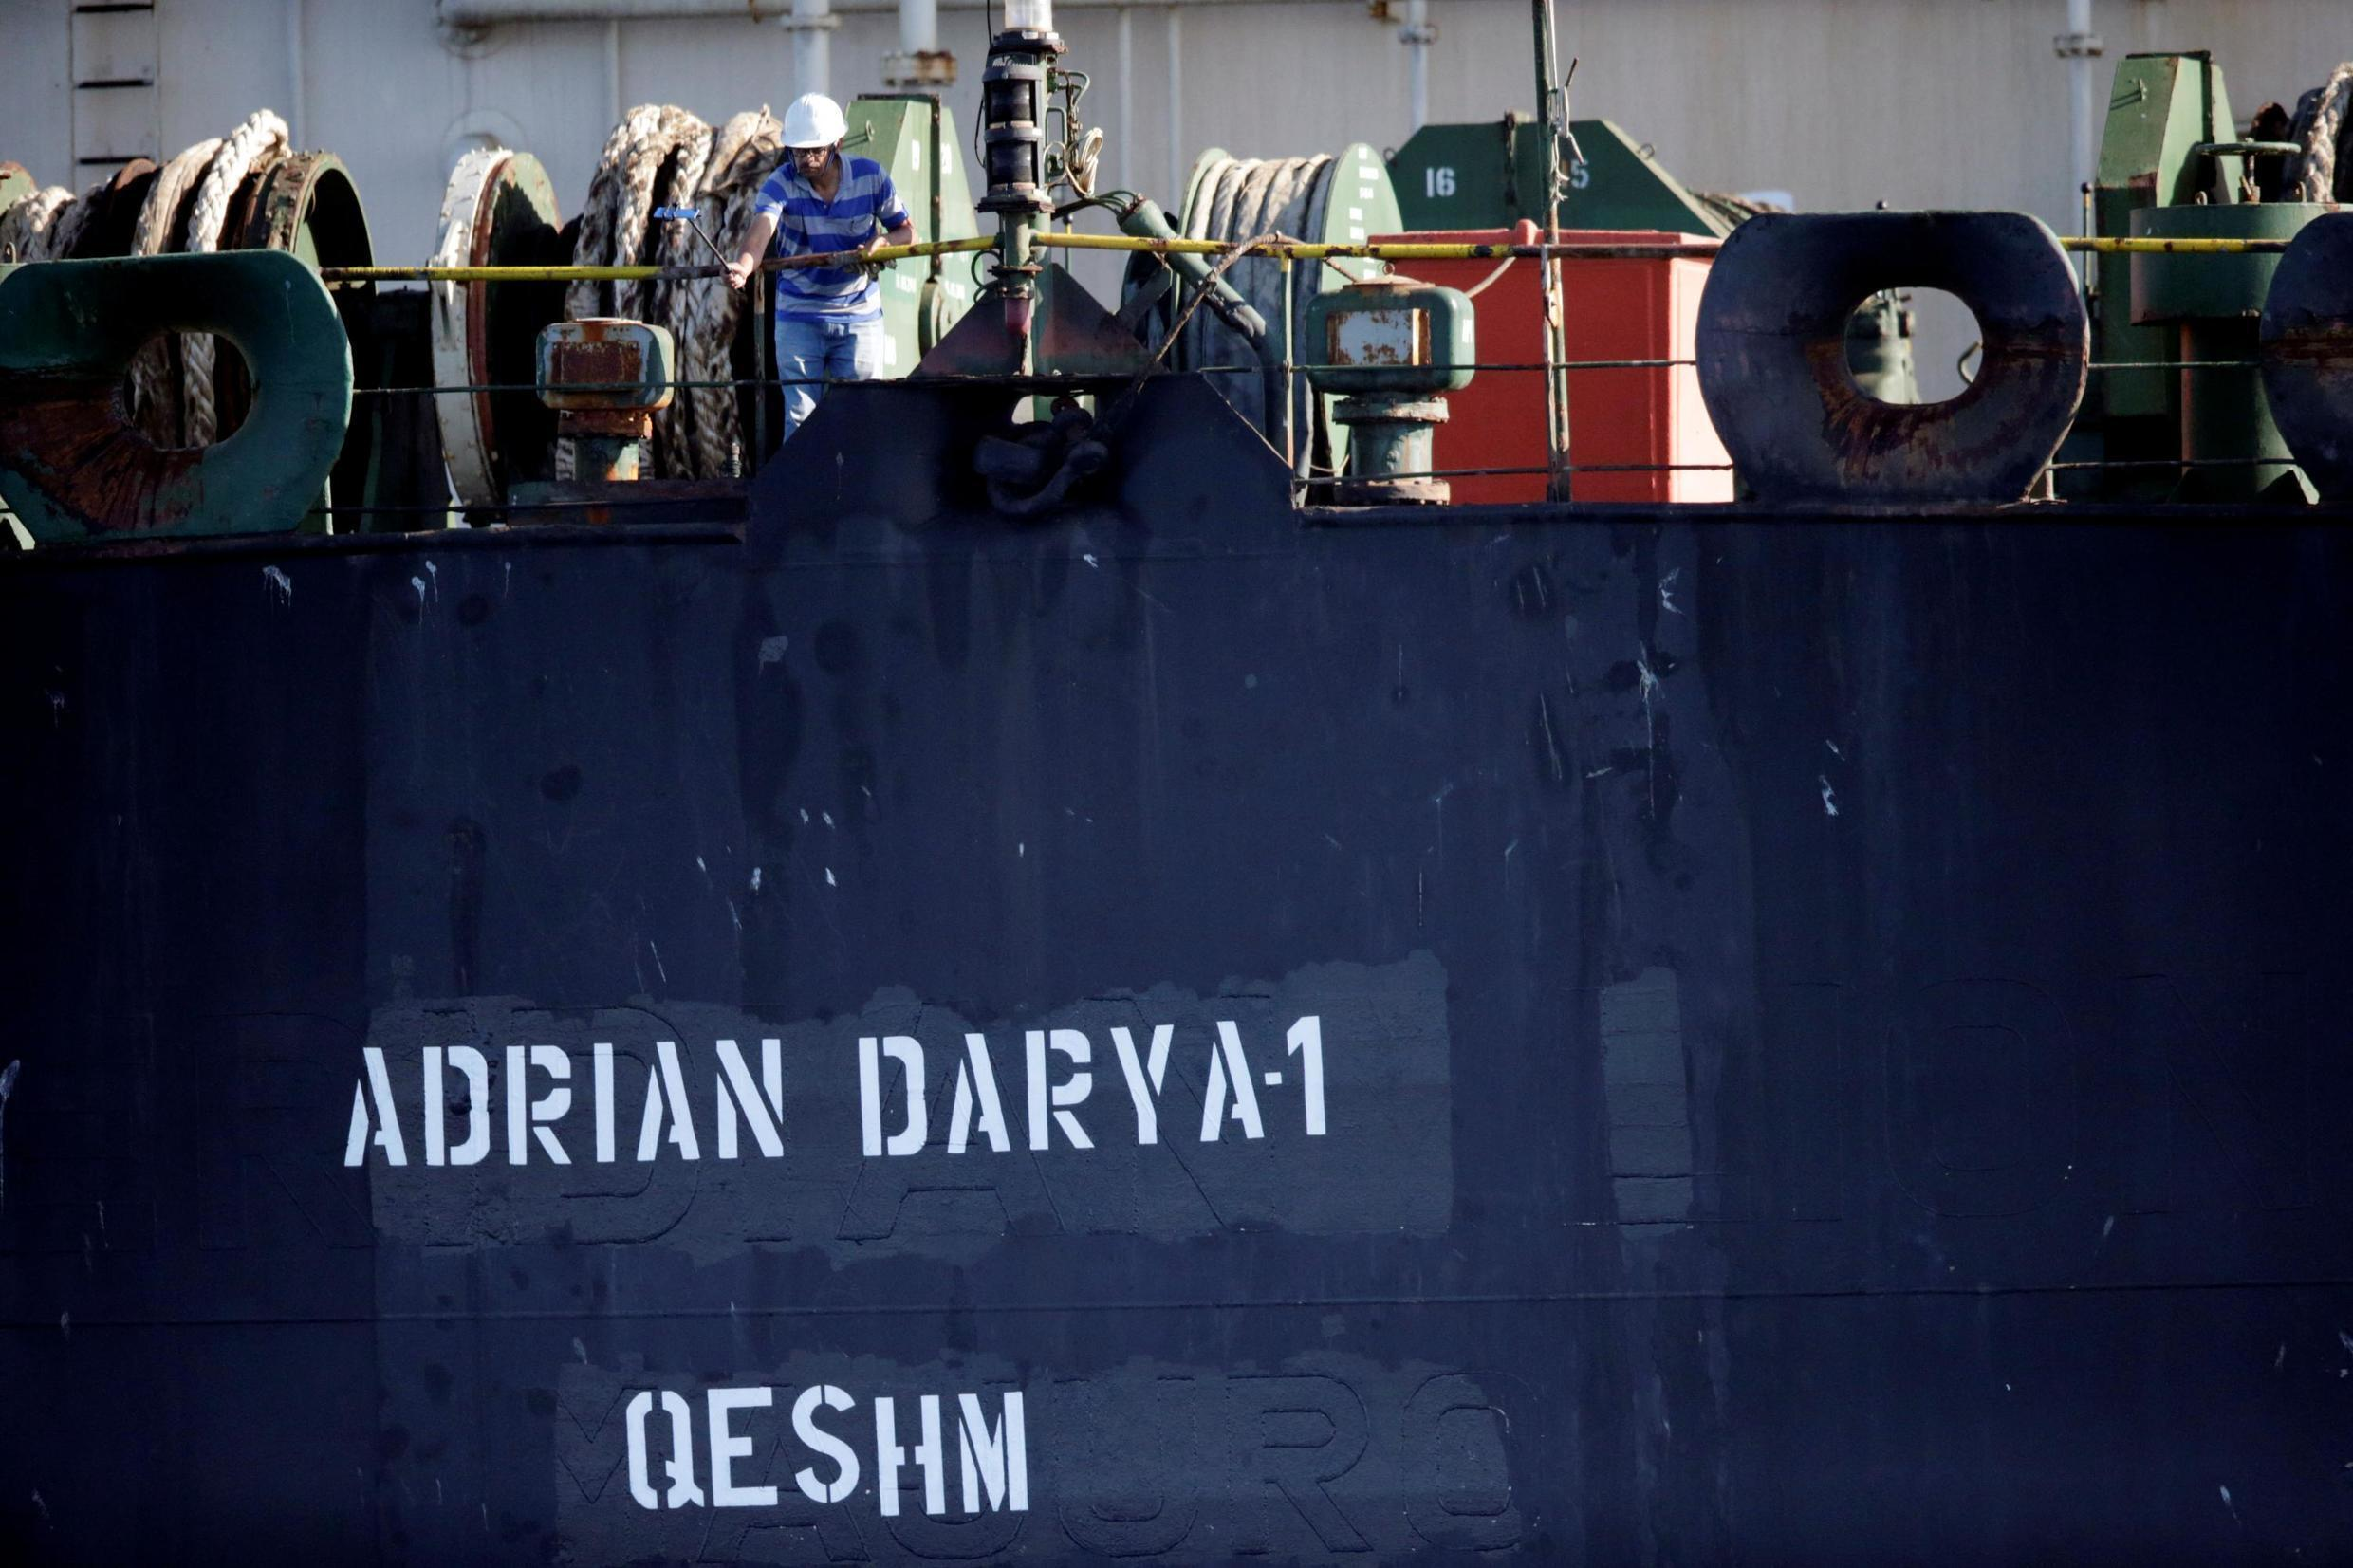 The Iranian oil tanker Grace 1 has been renamed Adrian Darya 1 and switched from a Panama flag to an Iranian one.